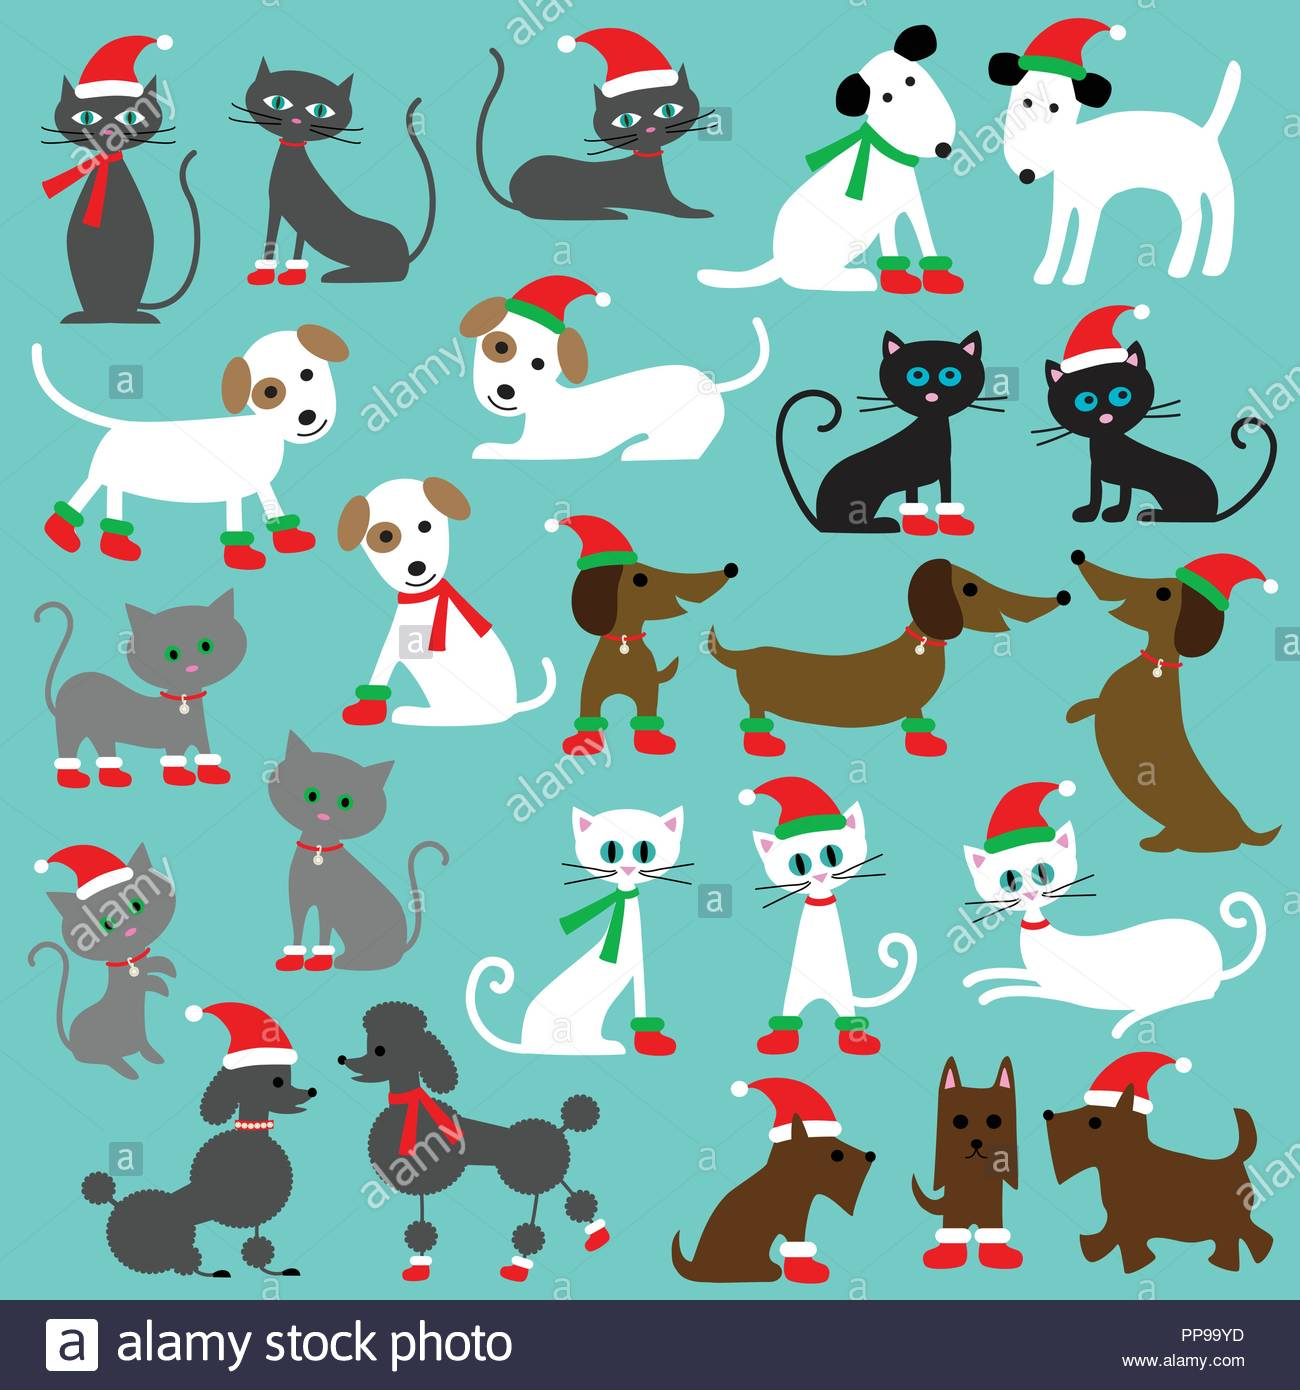 hight resolution of christmas cats and dogs clipart graphics